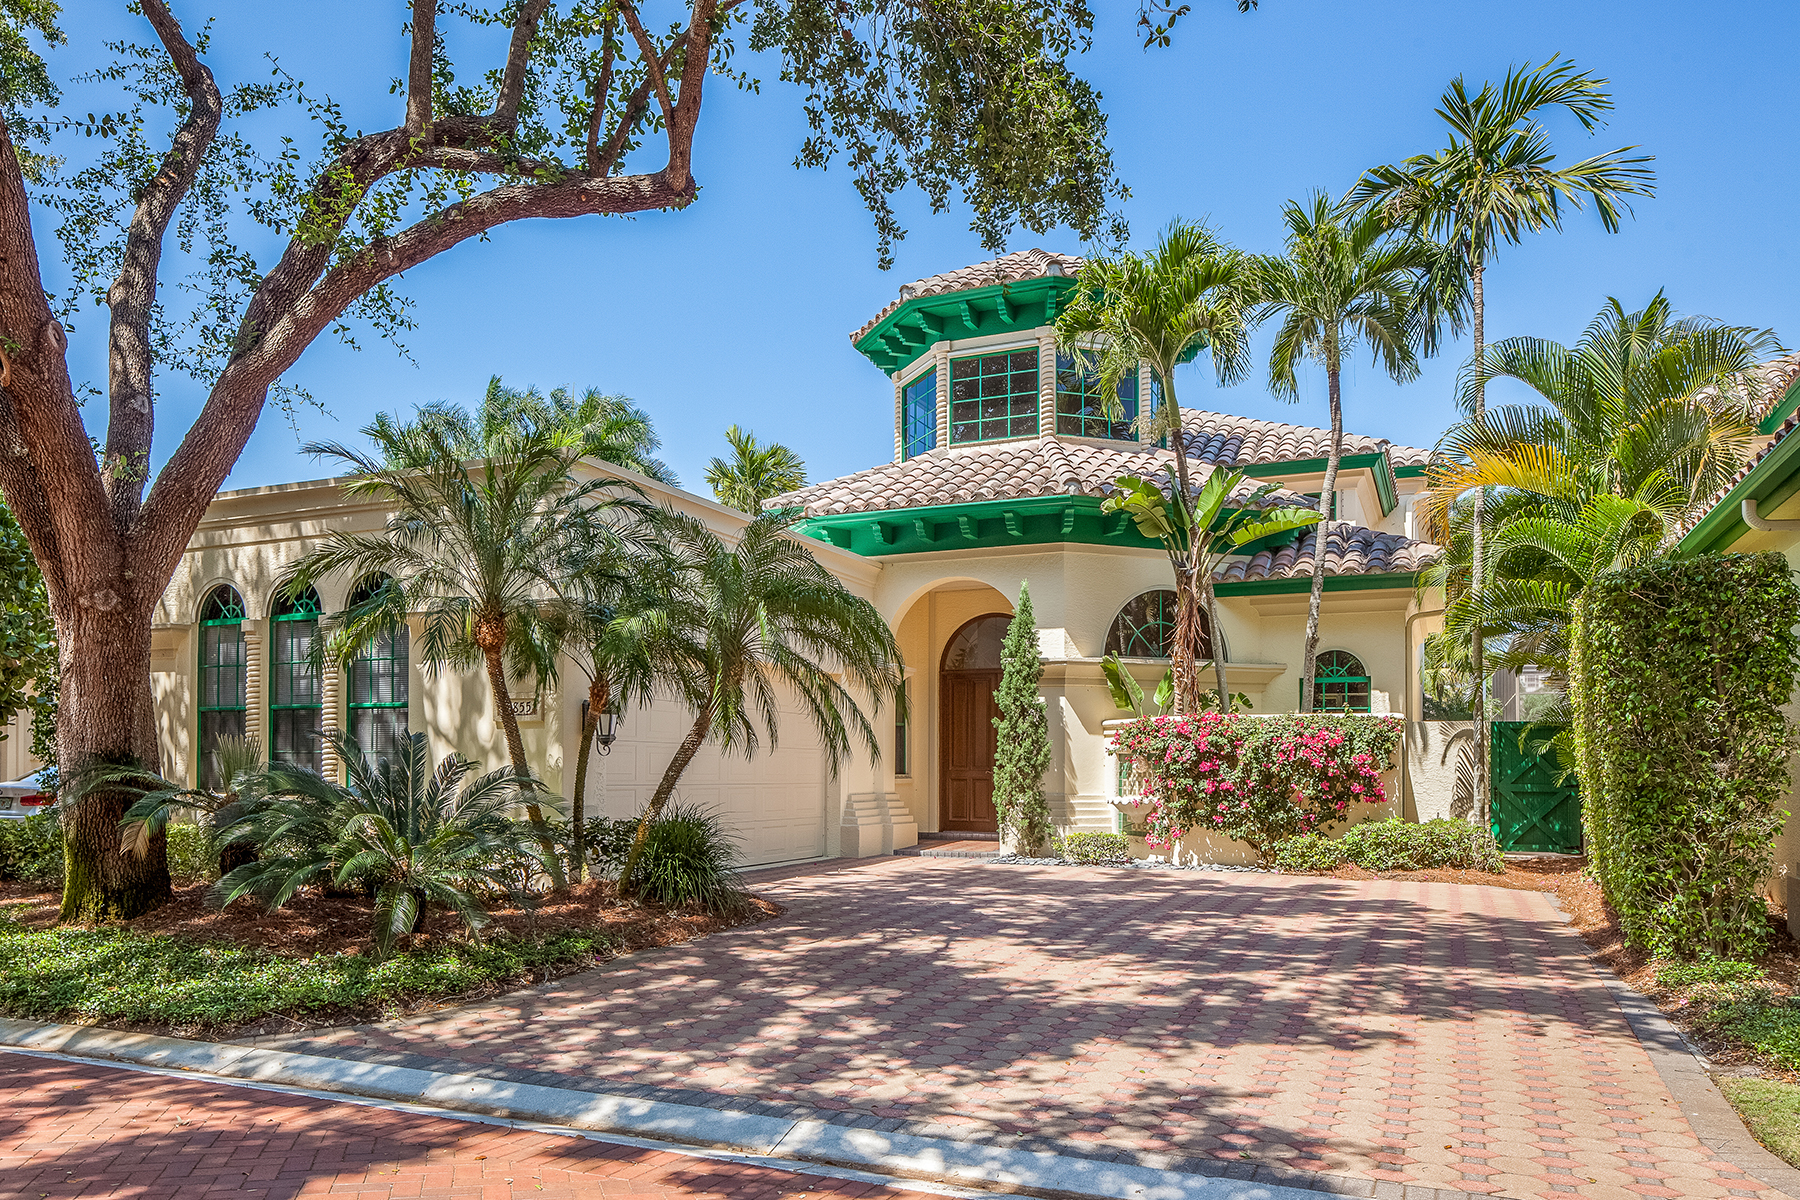 Single Family Home for Sale at PELICAN BAY - VIZCAYA AT BAY COLONY 7855 Vizcaya Way Naples, Florida, 34108 United States